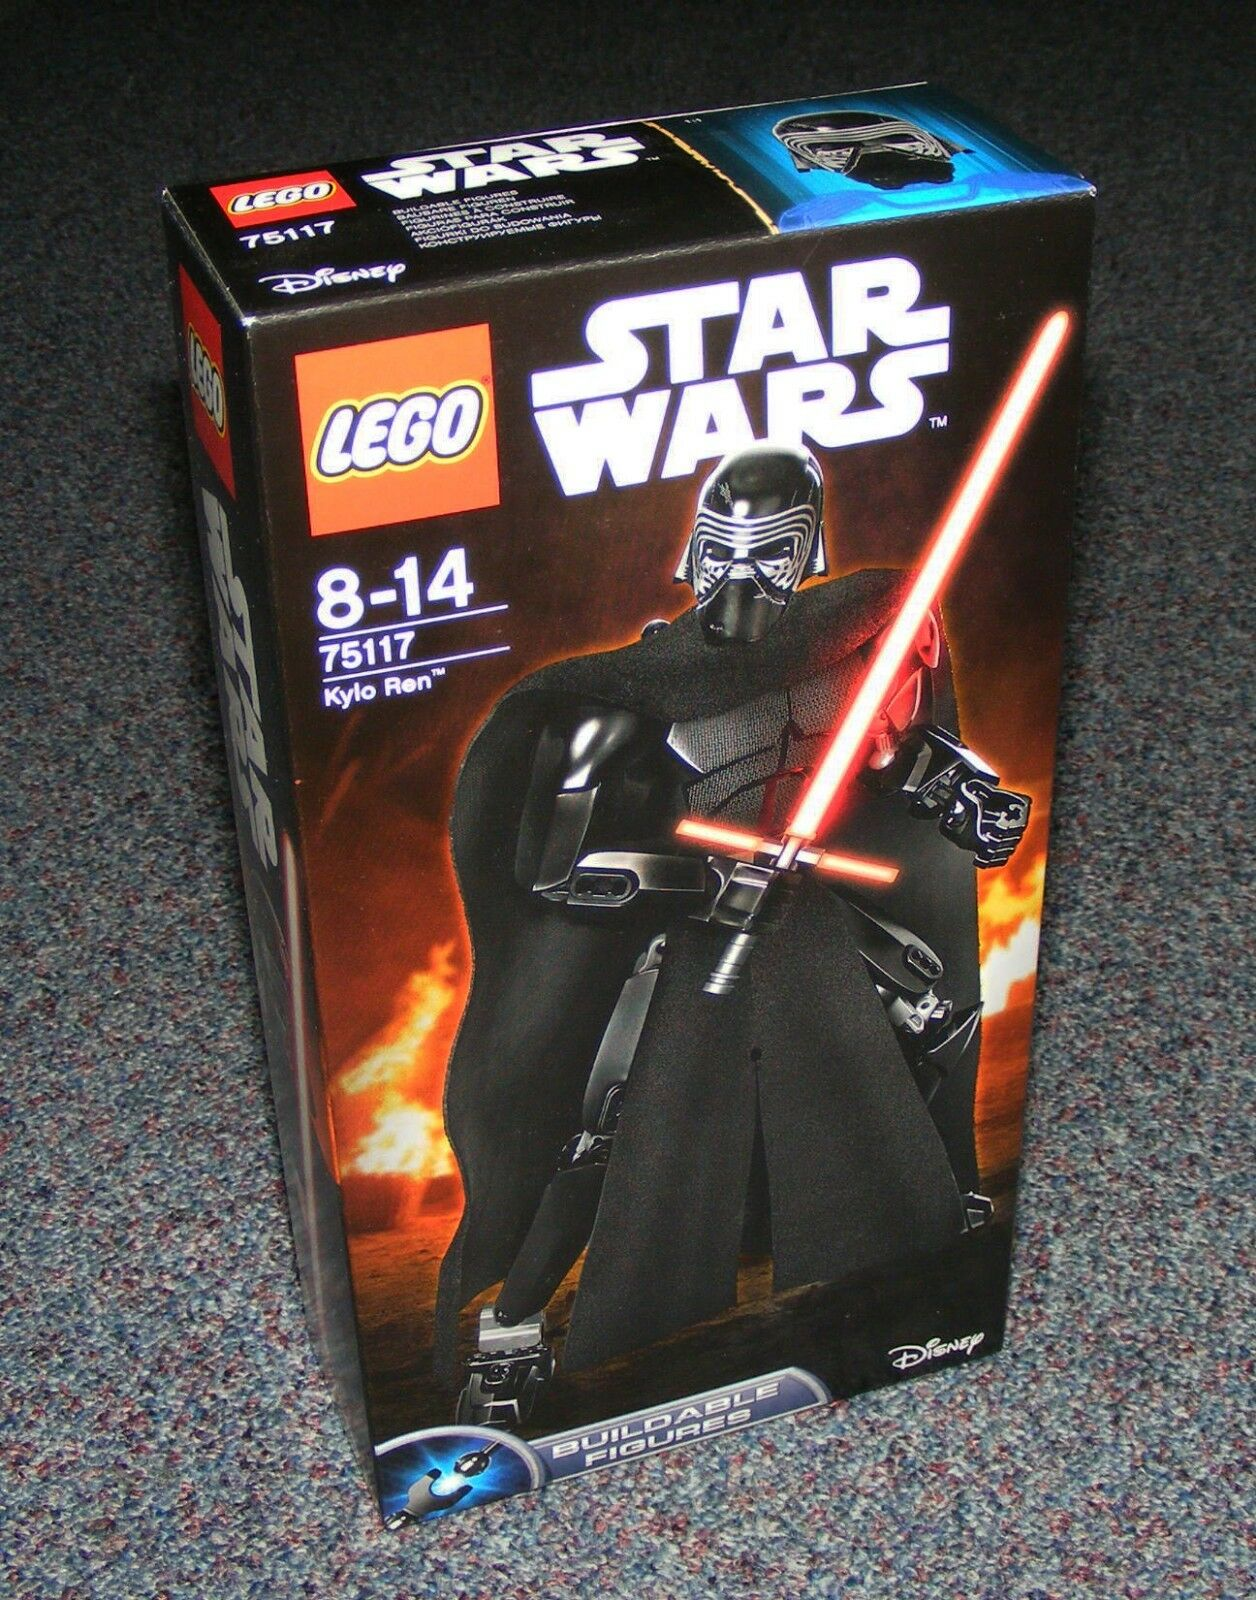 STAR WARS LEGO 75117 KYLO REN BUILDABLE FIGURE BRAND NEW SEALED